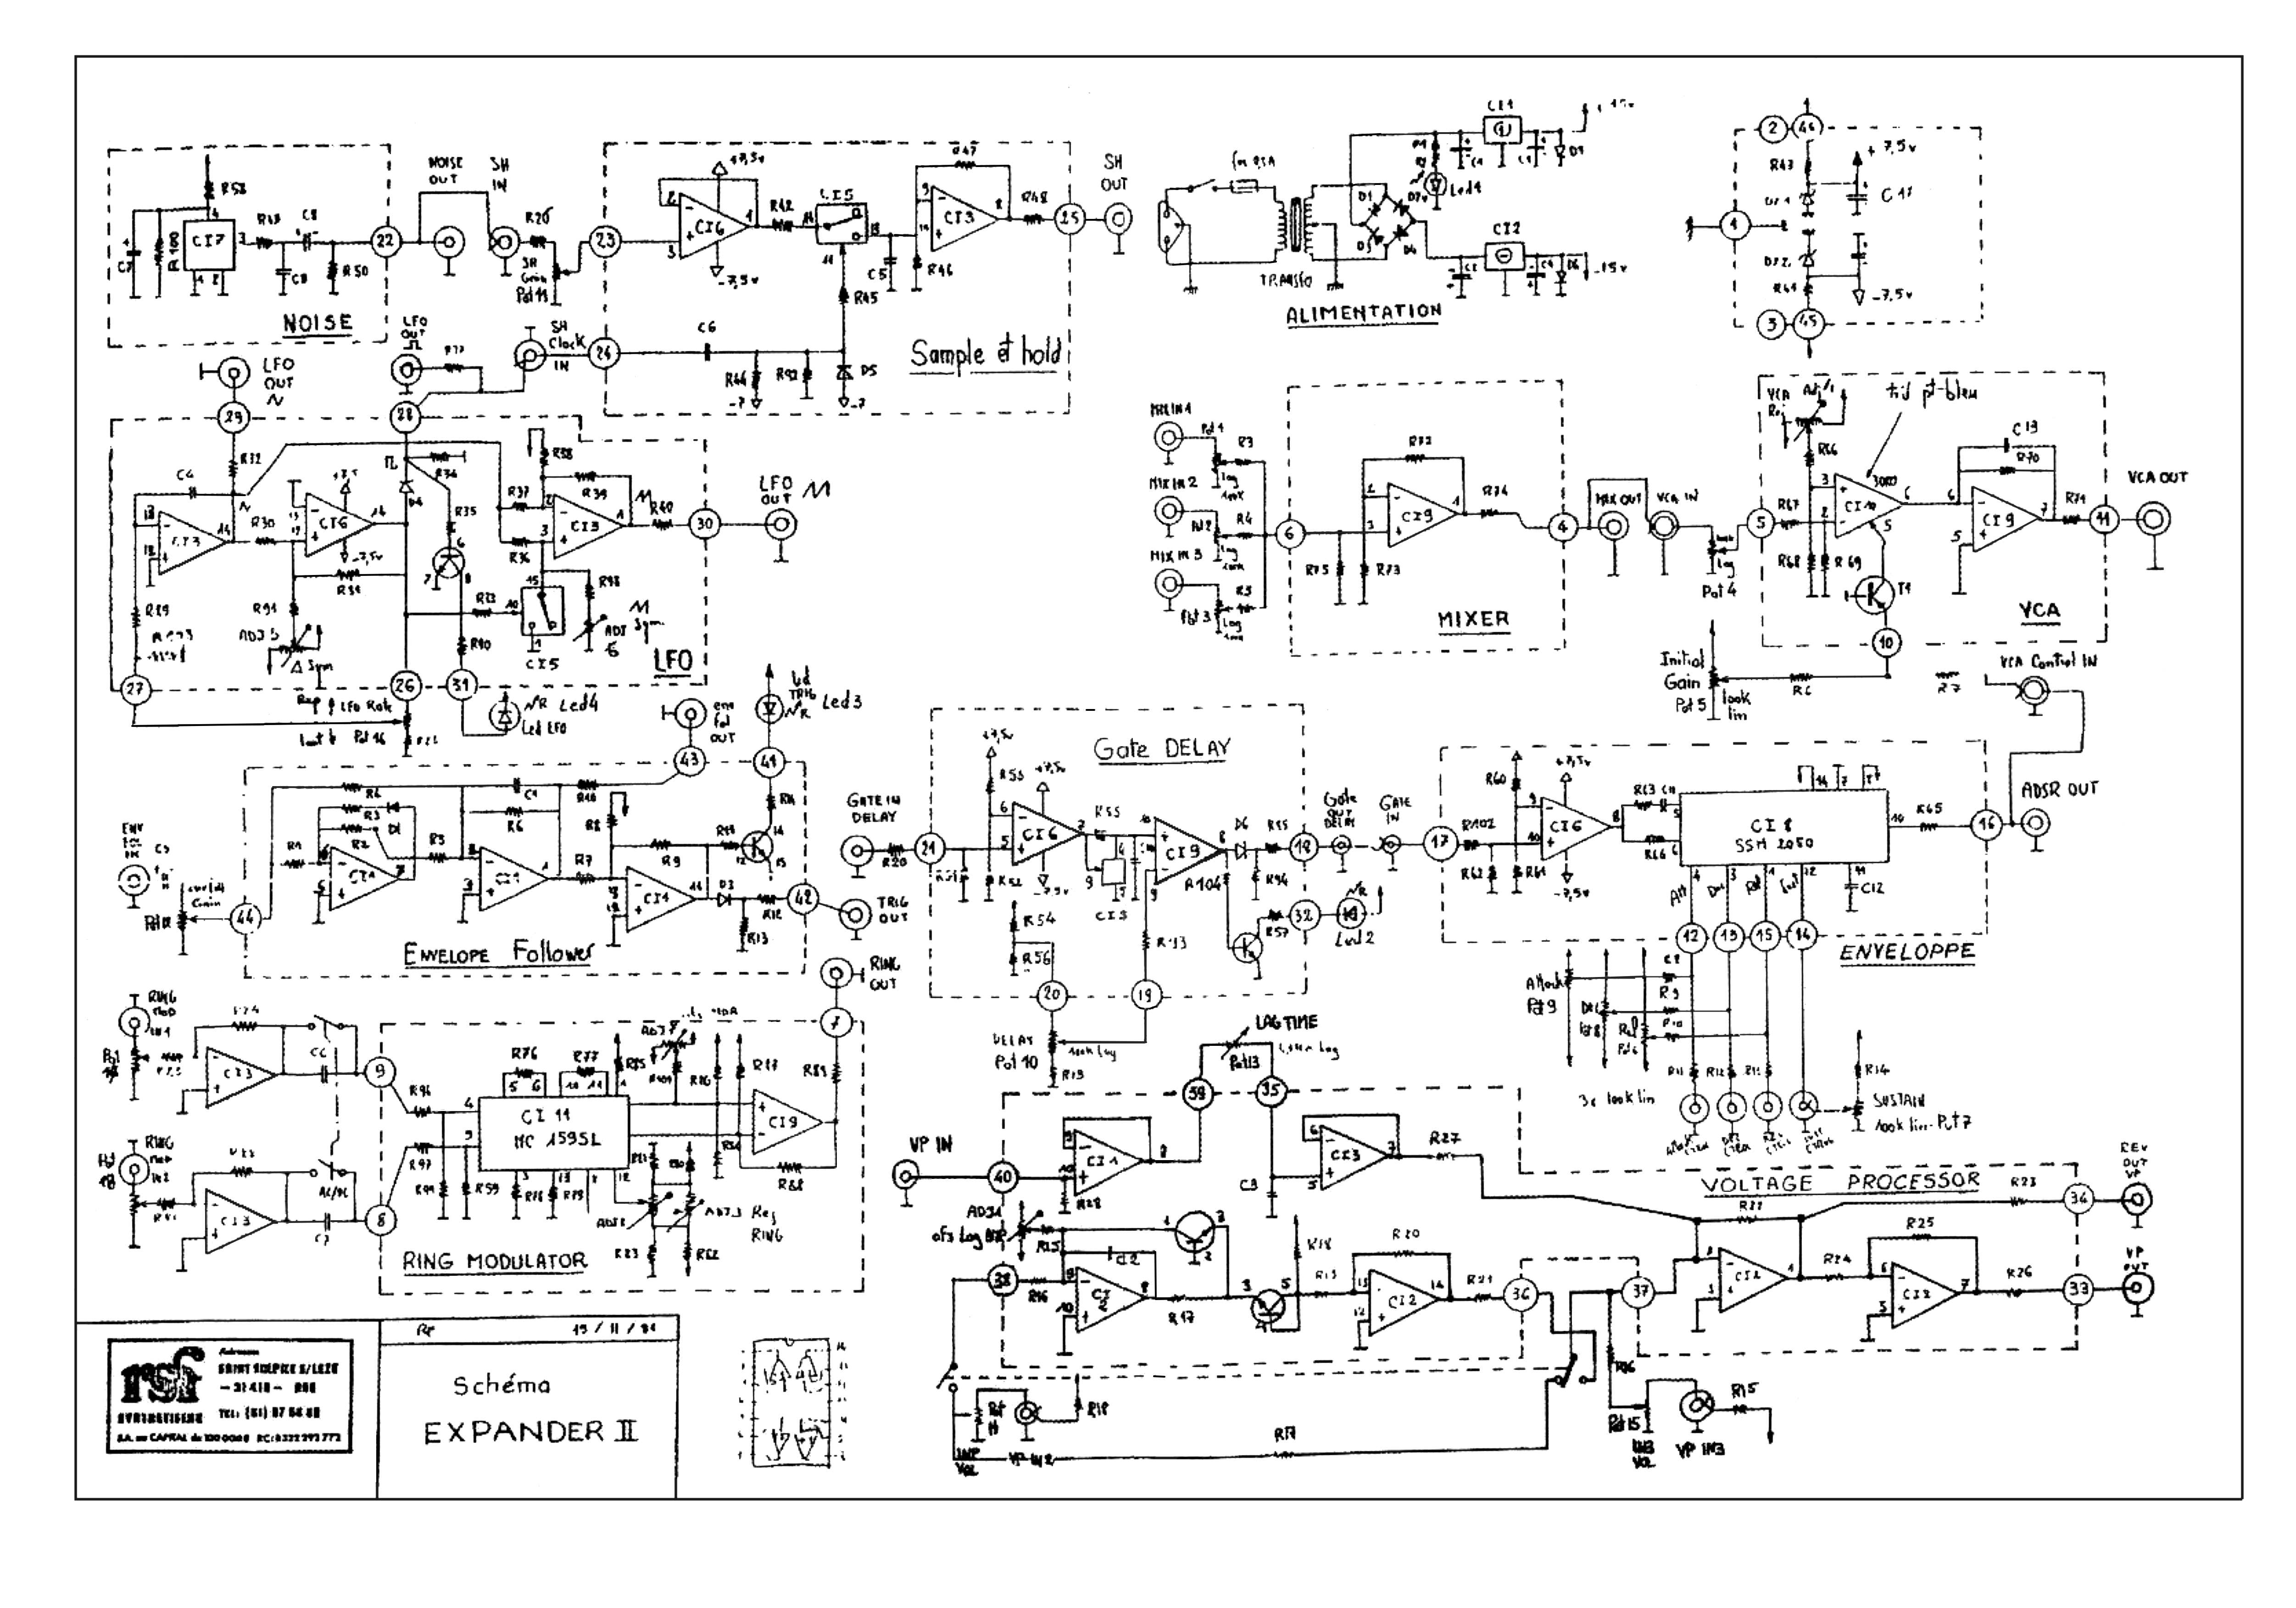 EXPANDER II_SCHEMATICS synthesizer service manuals free download ra-4000 installation manual at crackthecode.co